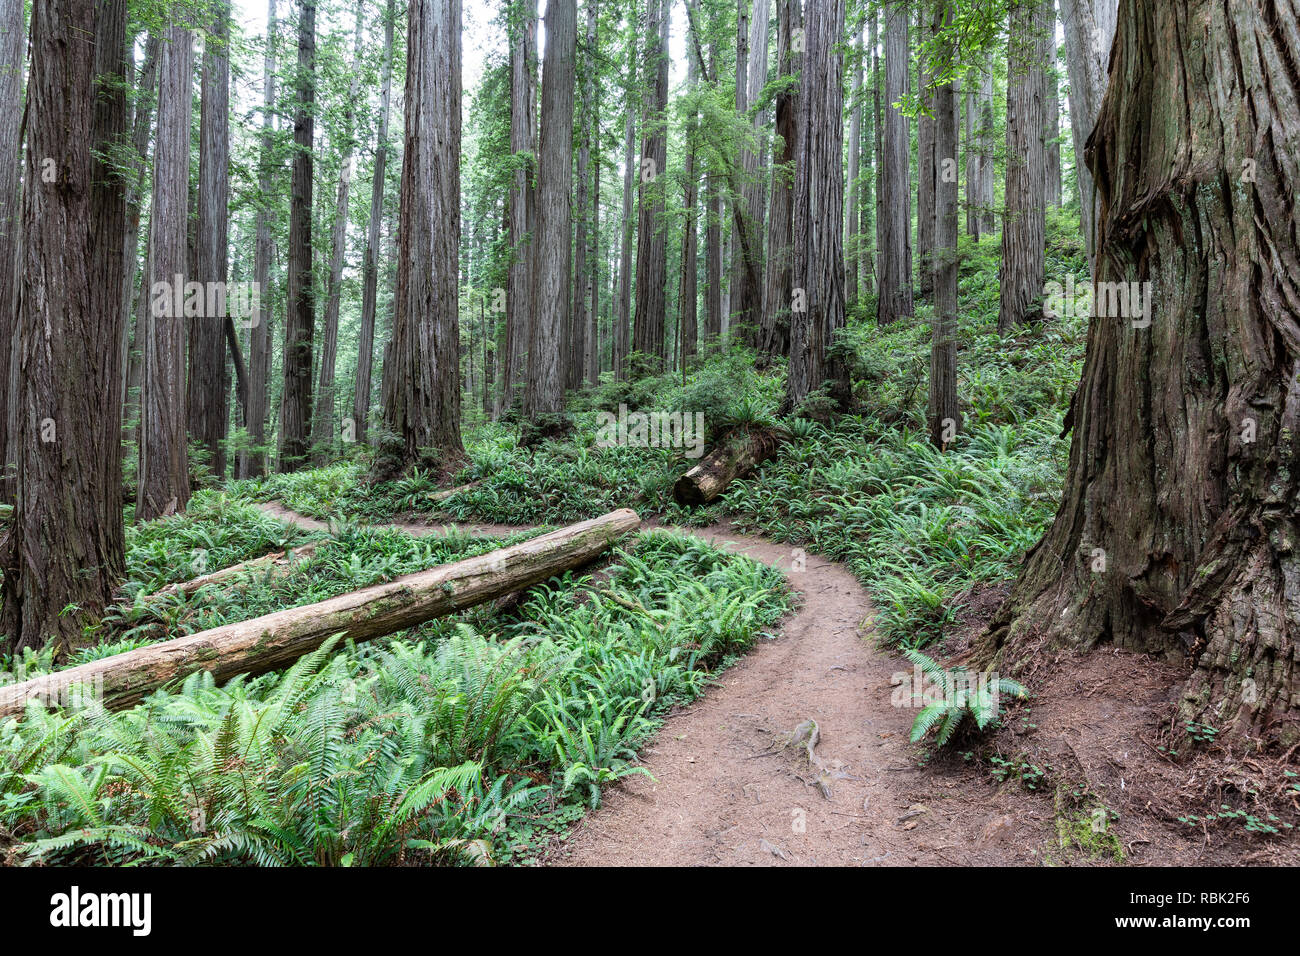 The Boy Scout Tree Trail winds through a wild old growth redwood (Sequoia sempervirens) forest in Jedediah Smith Redwoods State Park. - Stock Image